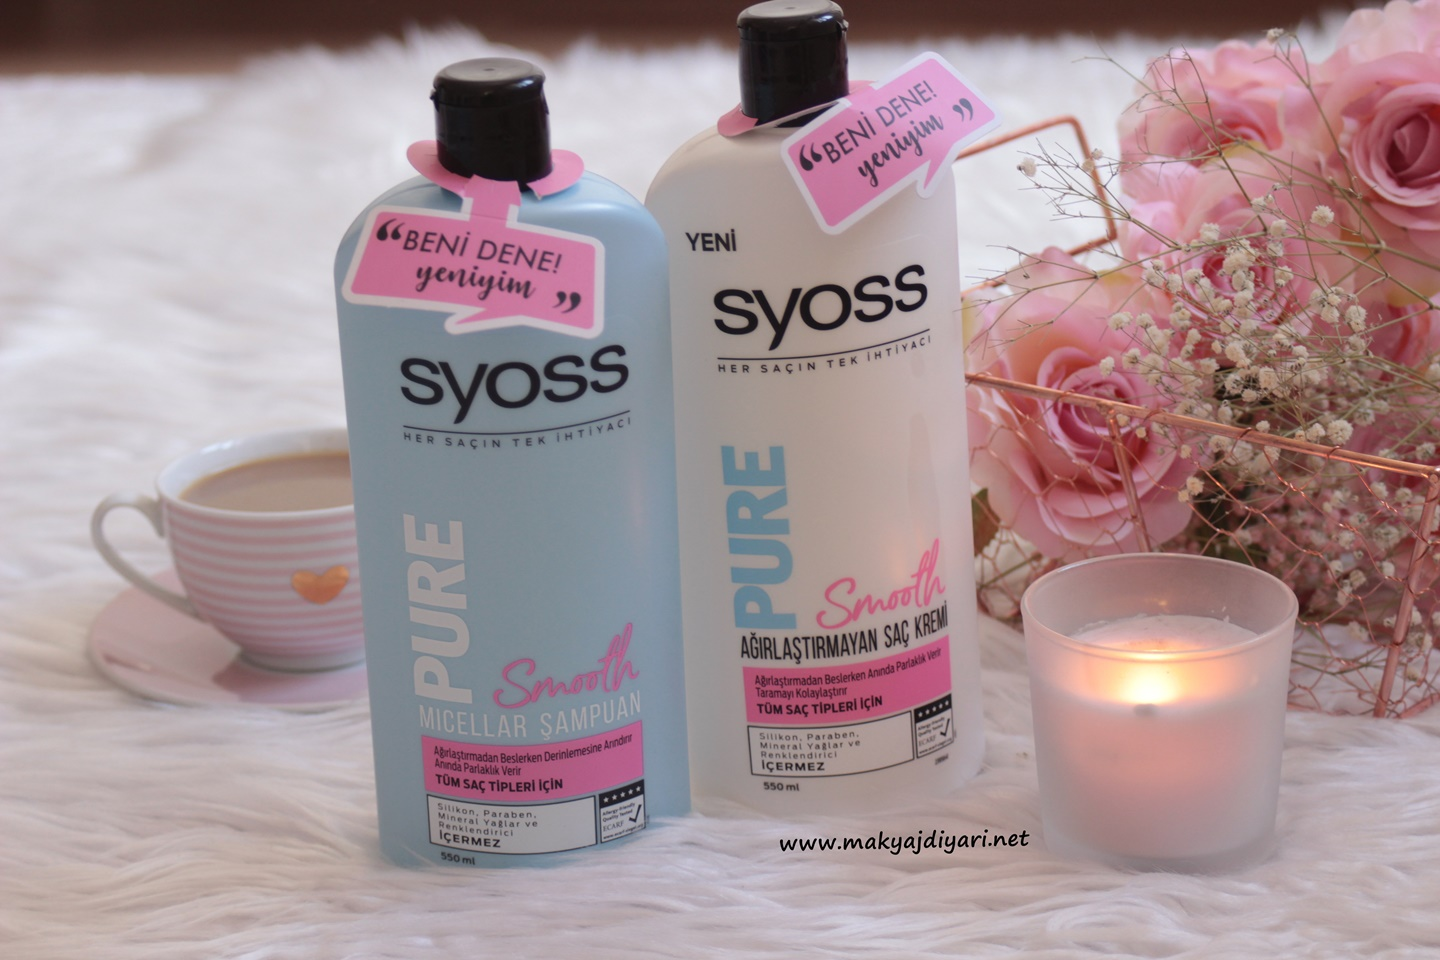 syoss-pure-smooth-micellar-sampuan-sac-kremi